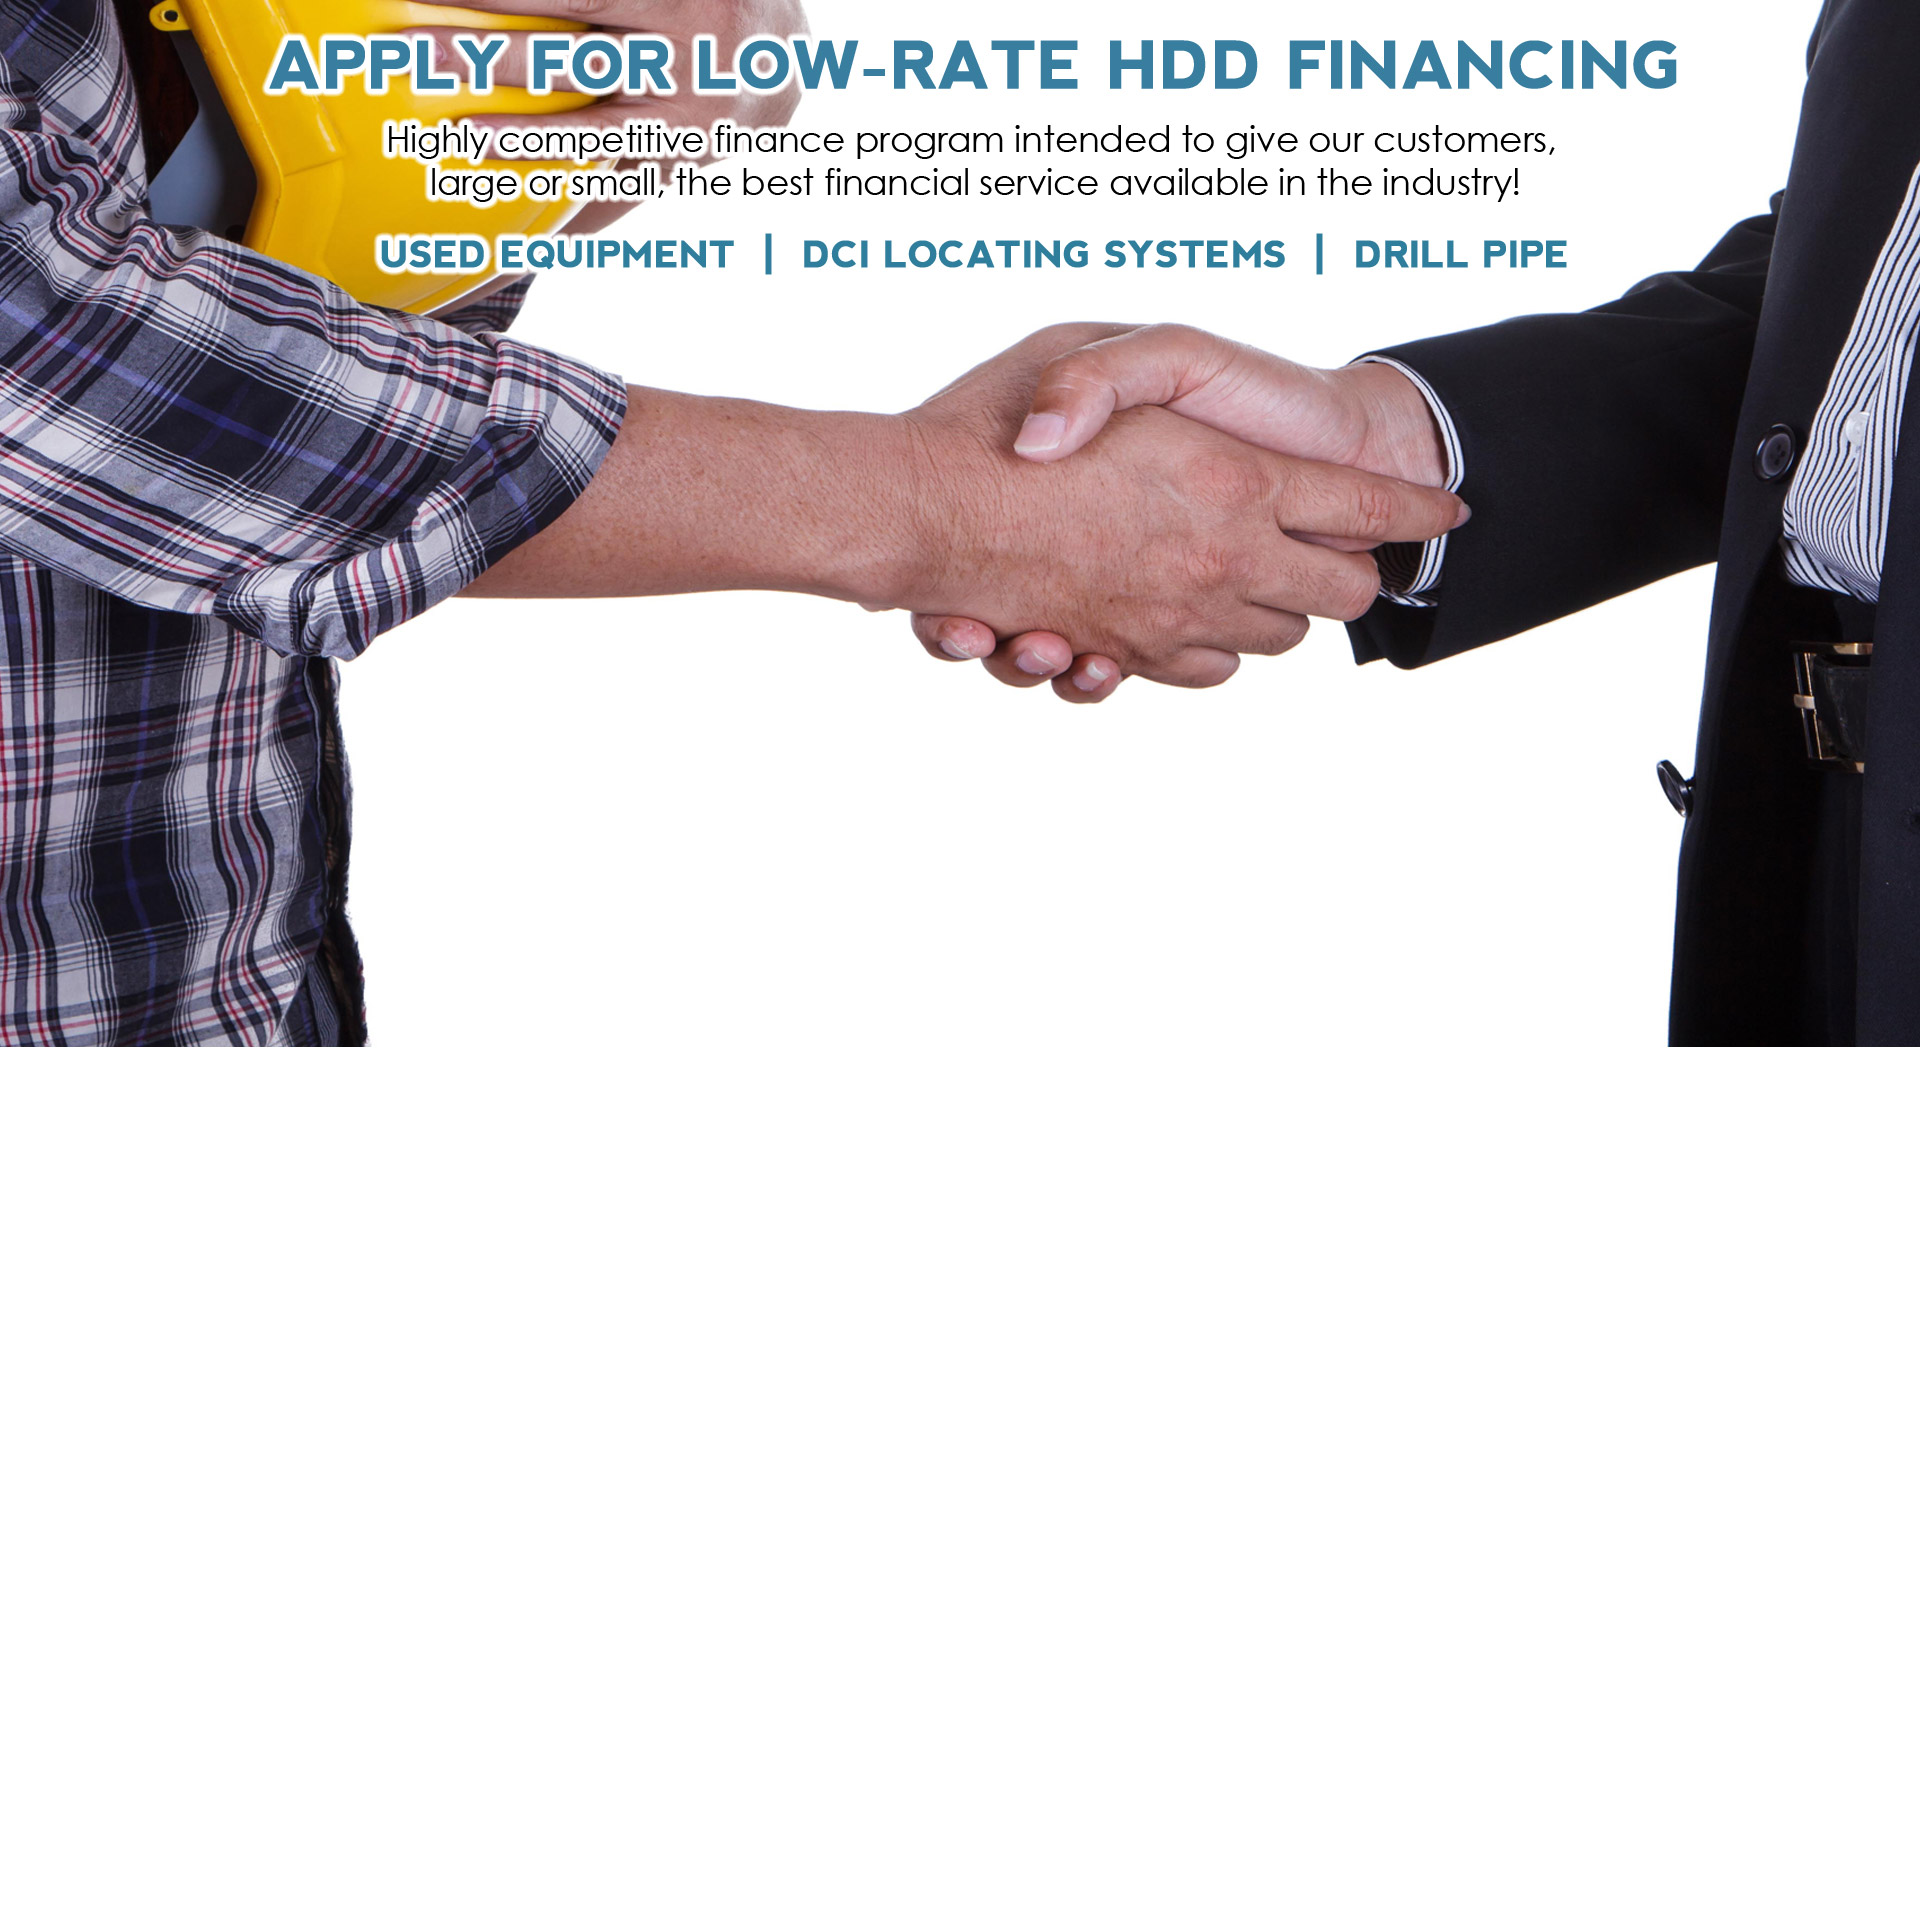 used_hdd_financing